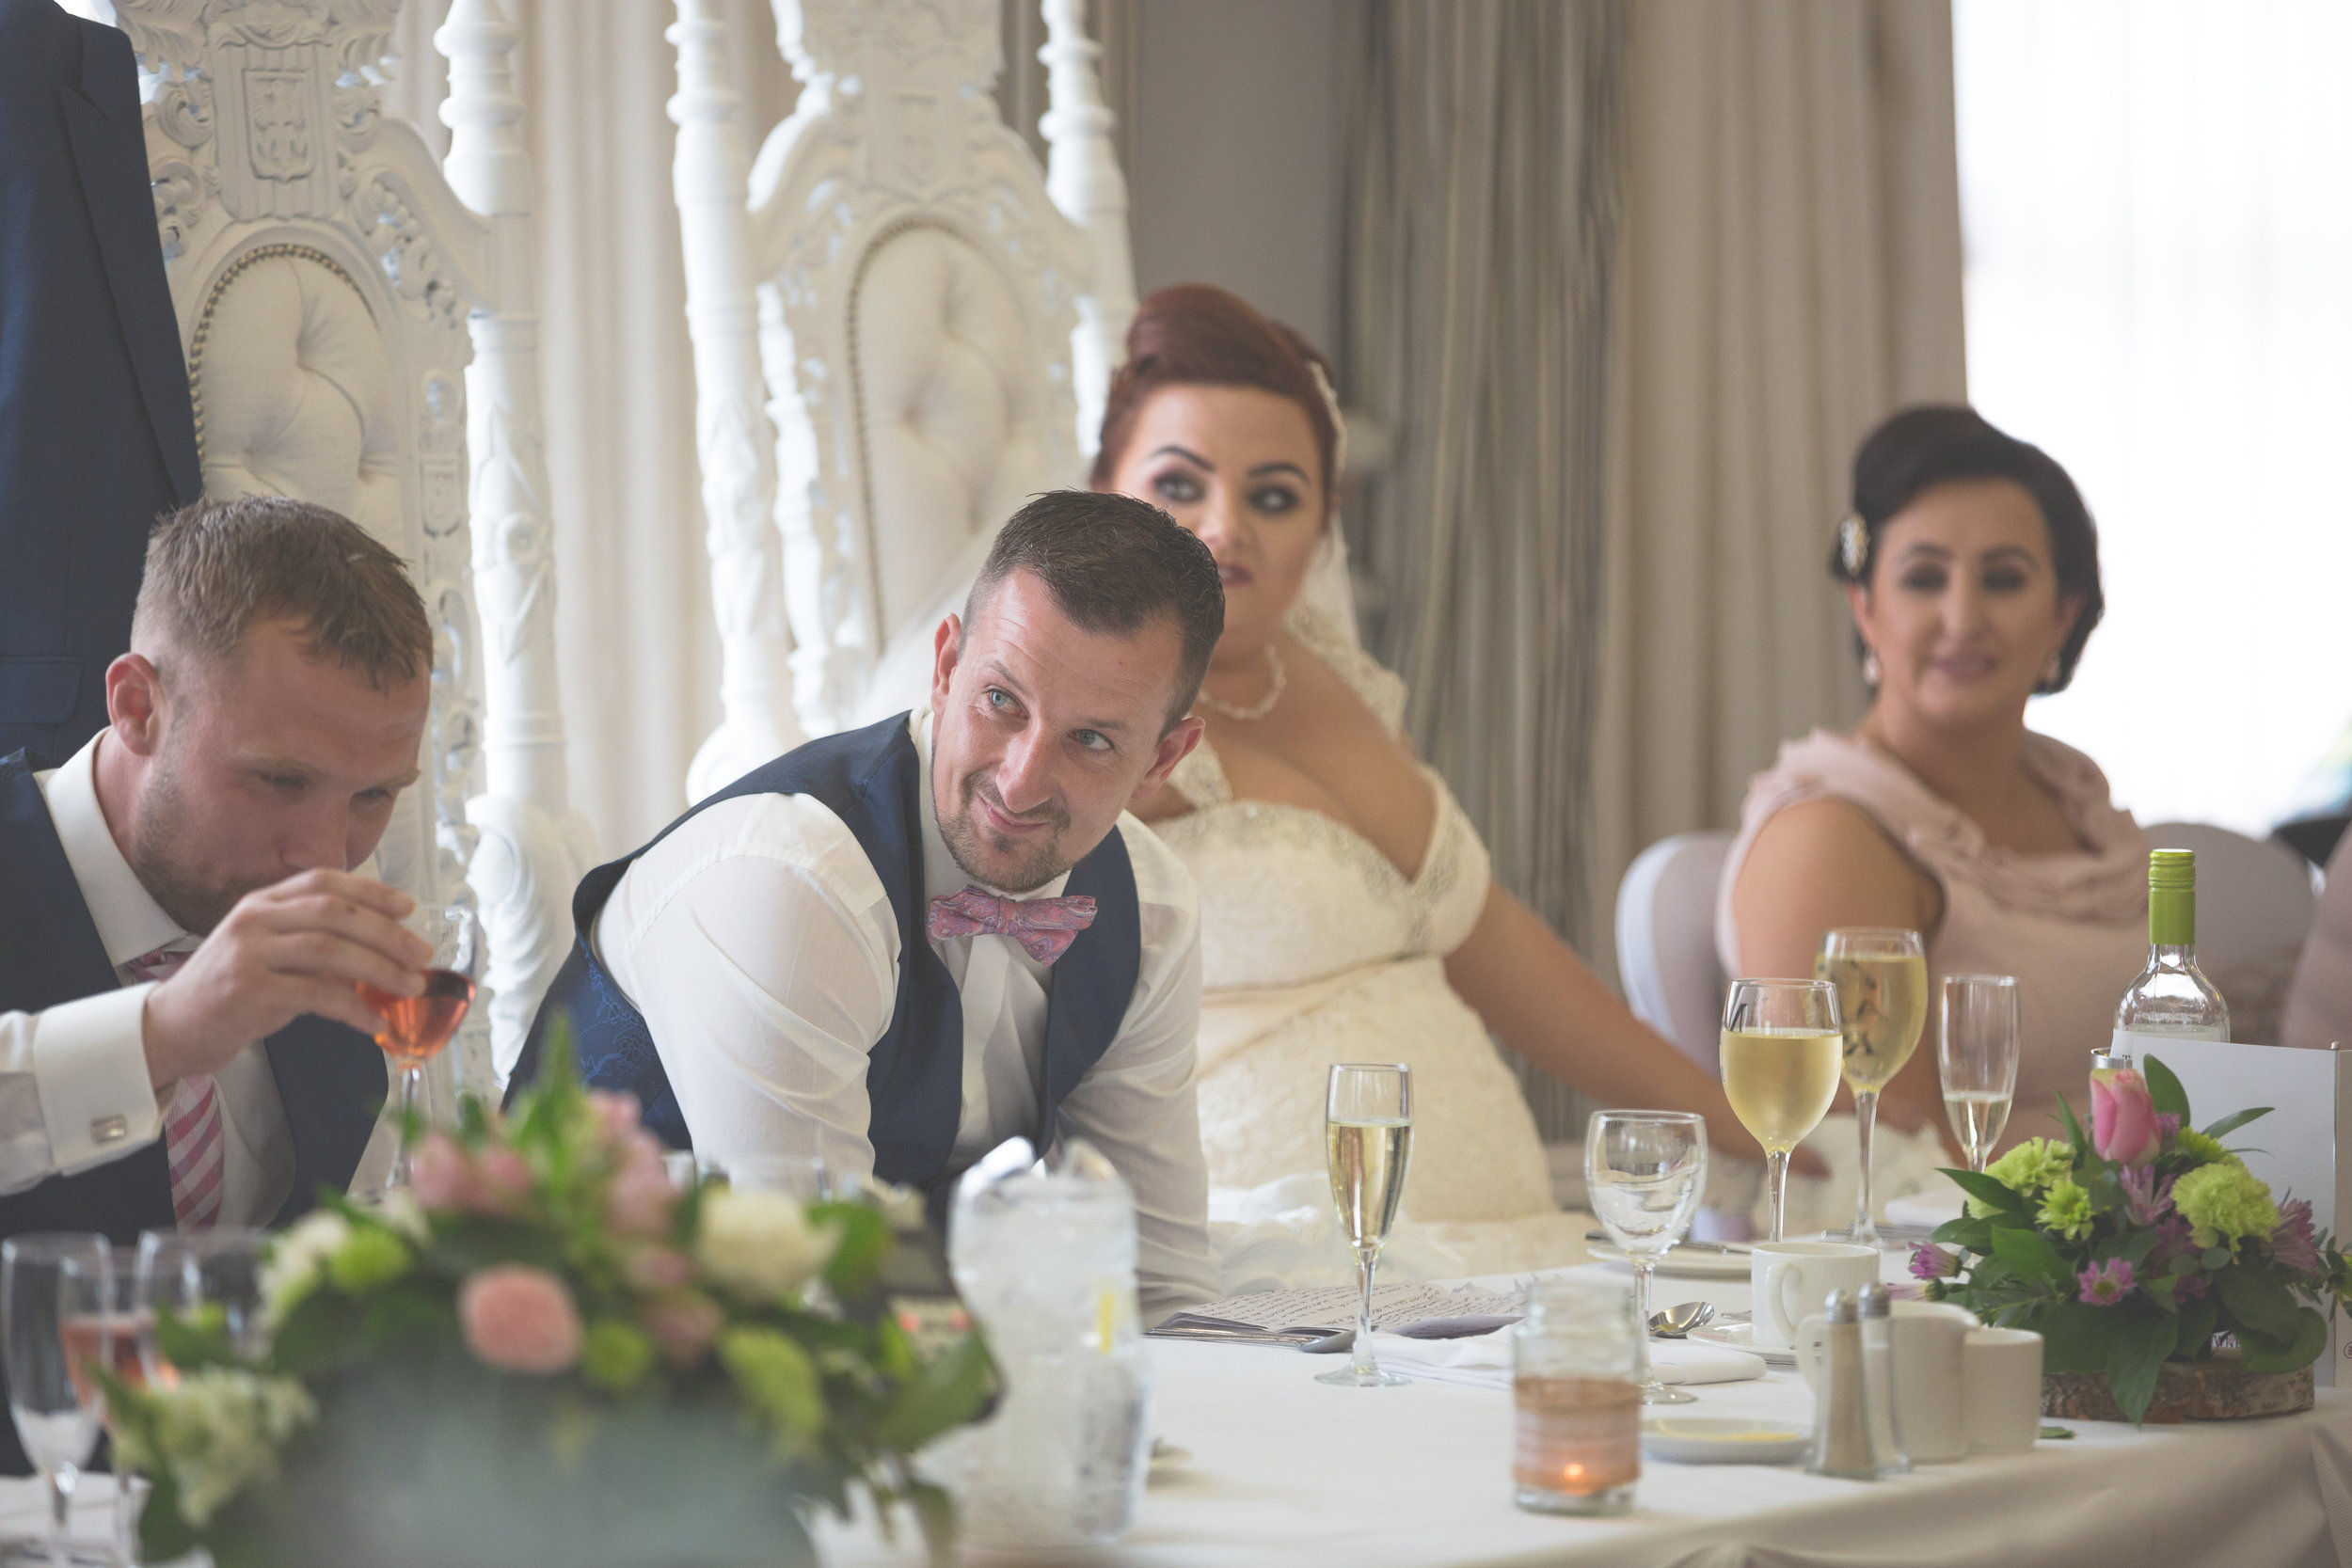 Antoinette & Stephen - Speeches | Brian McEwan Photography | Wedding Photographer Northern Ireland 38.jpg